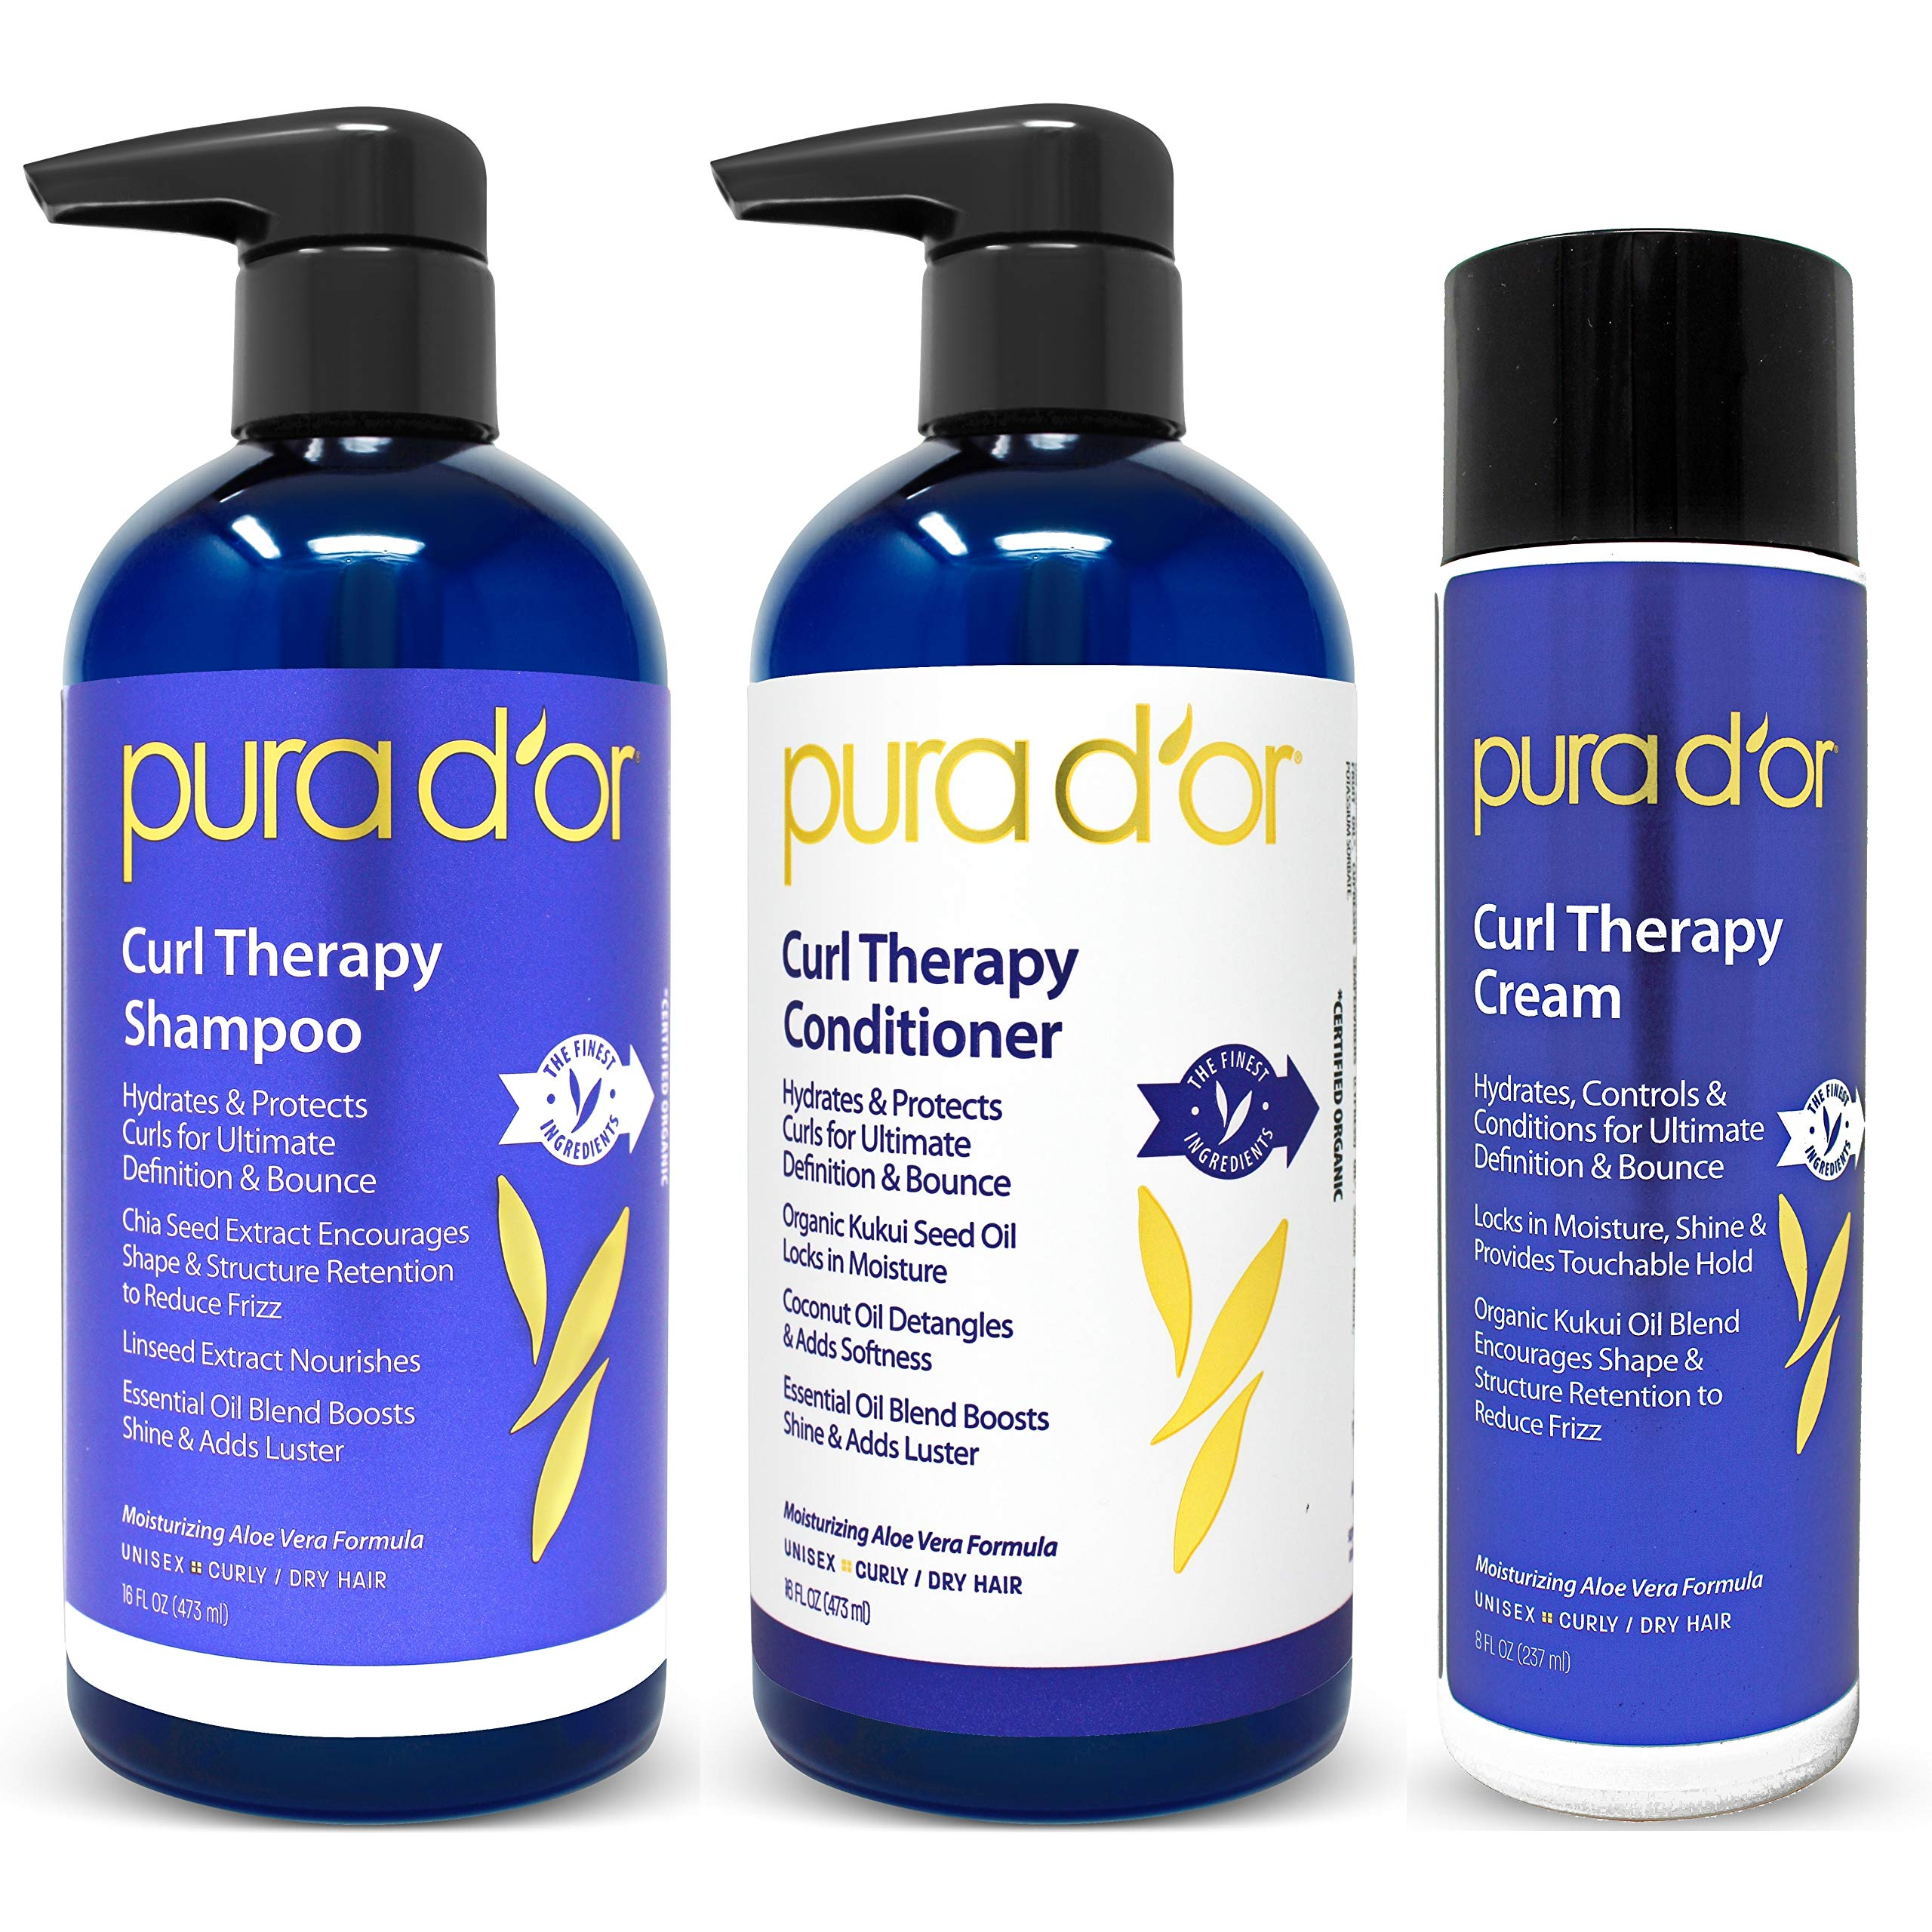 PURA D'OR Curl Therapy Shampoo, Conditioner, and Styling Cream 3-Piece Set - For Styling Natural and Treated Curls, Gentle Sulfate Free with Natural Ingredients, Men & Women (Packaging may vary) by PURA D'OR